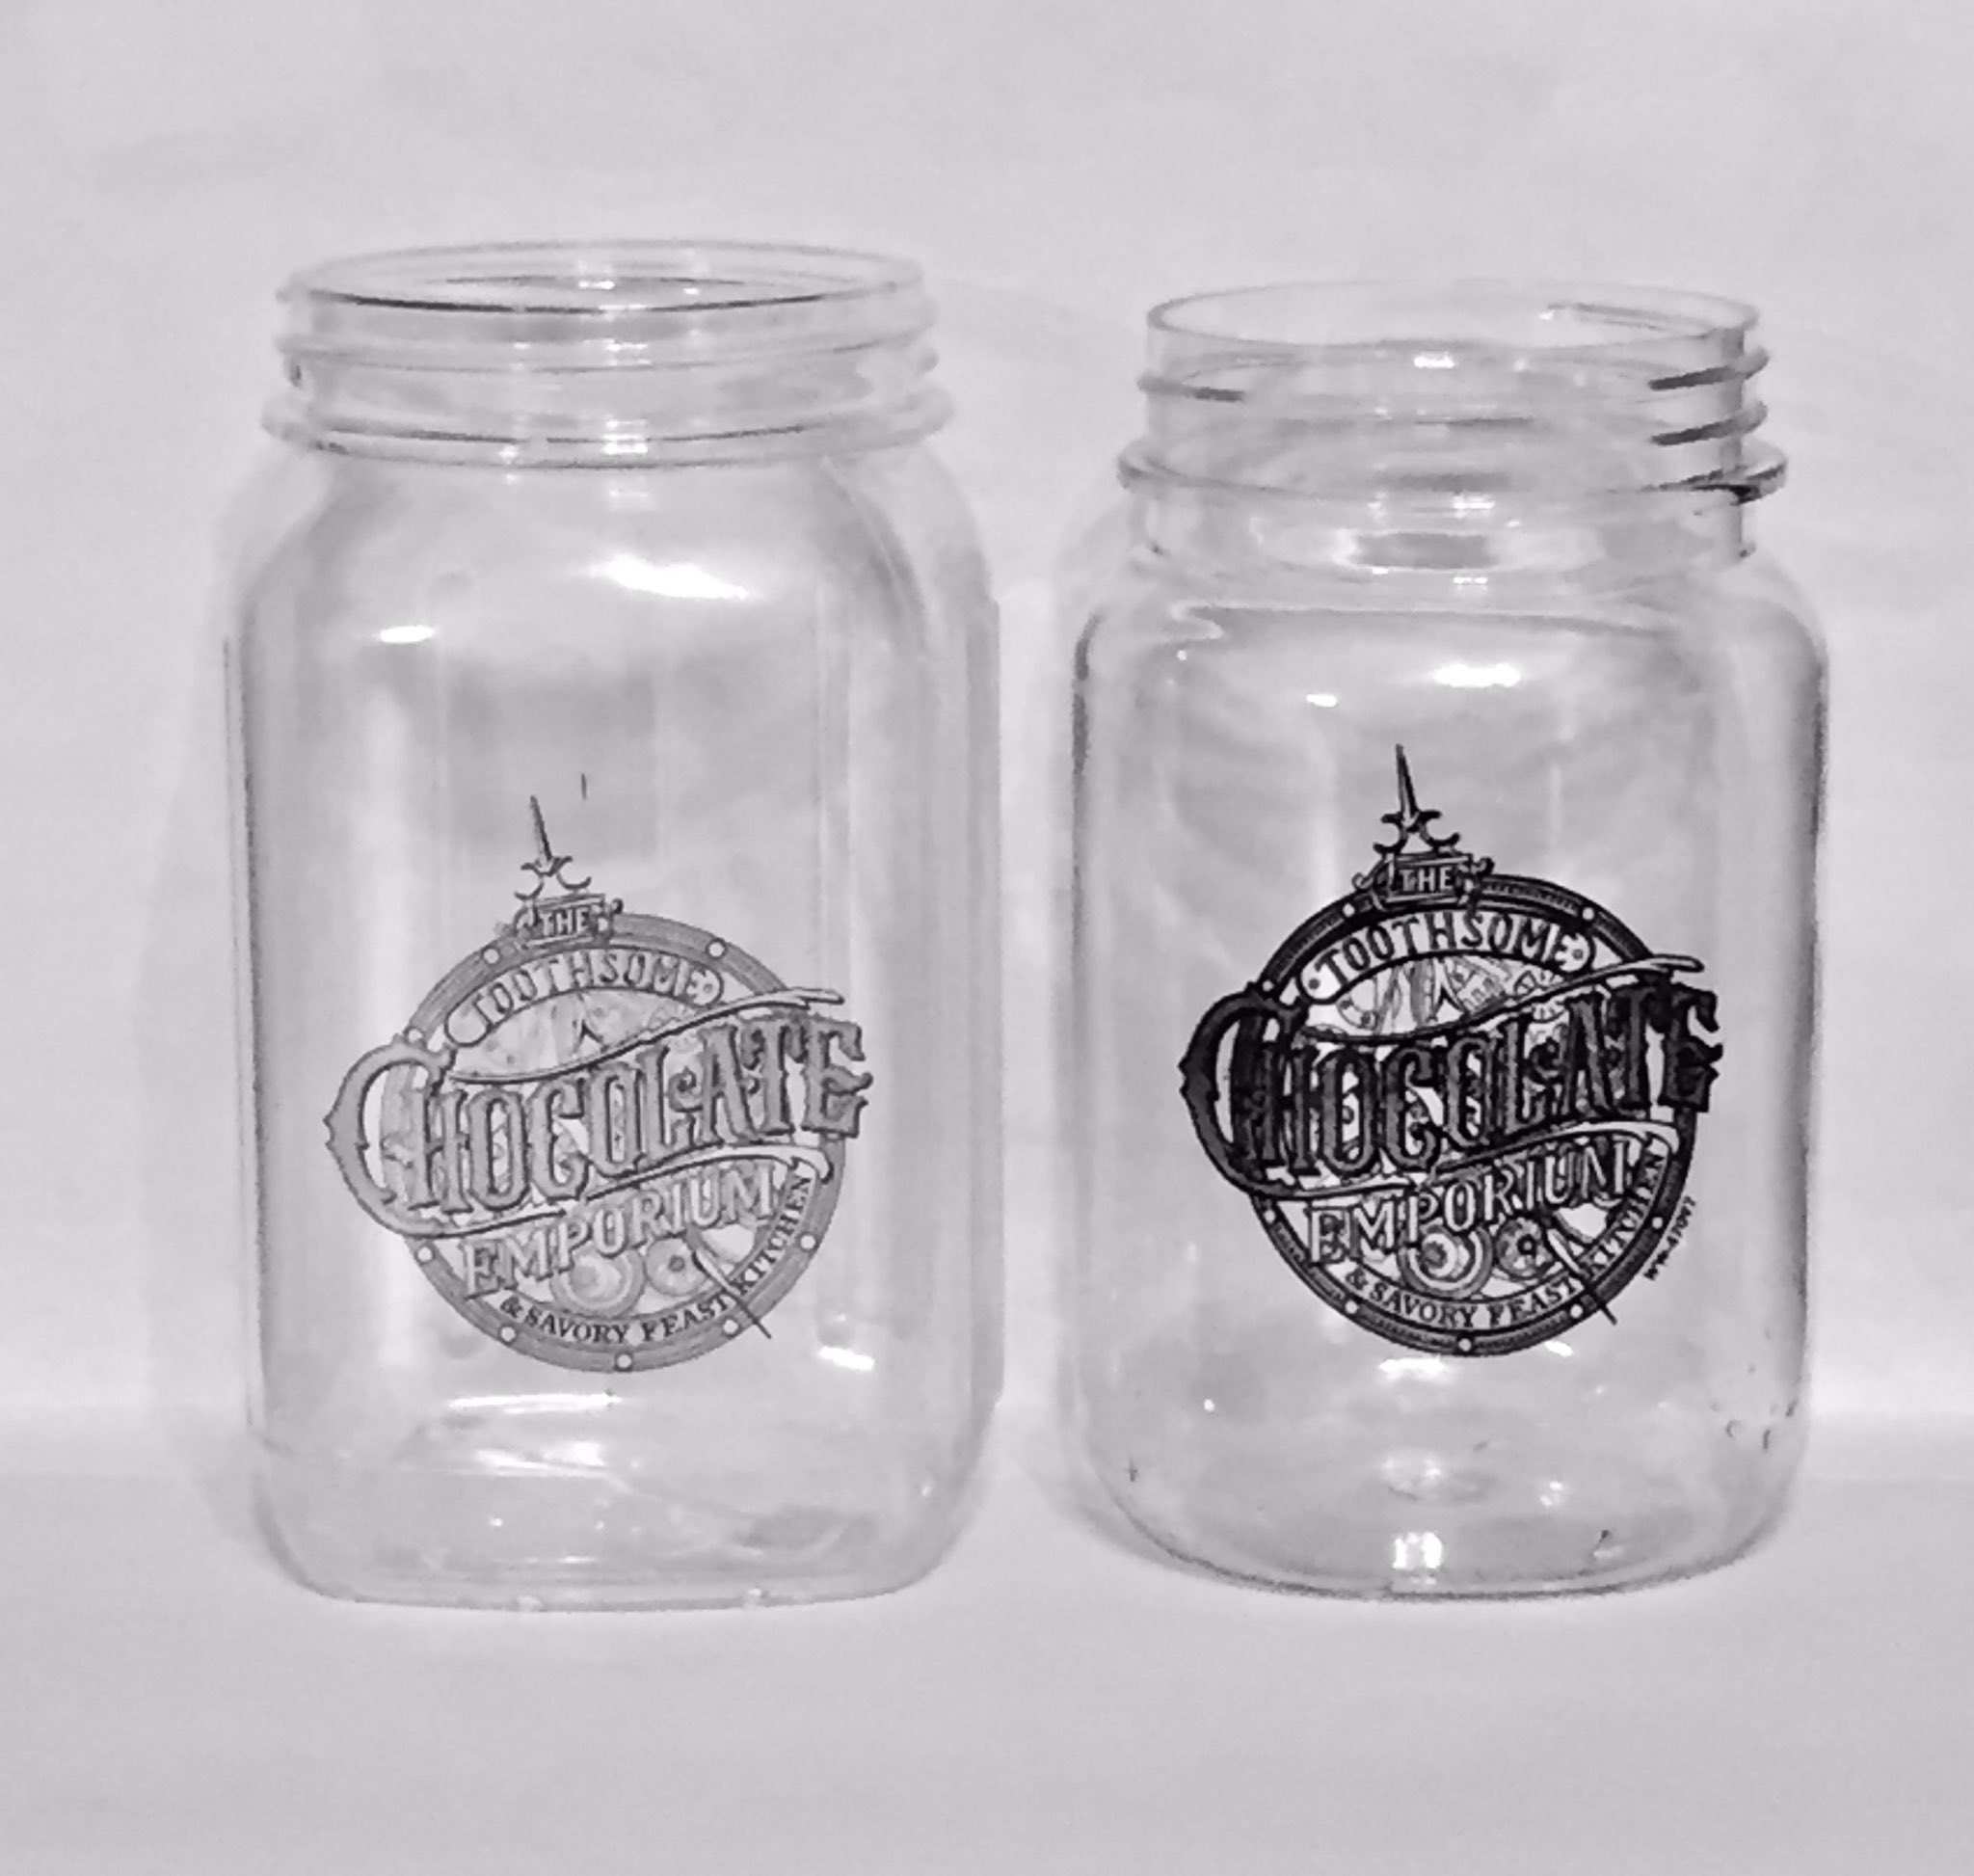 #UniversalOrlando has modified their Toothsome shake jars in the last month. They now hold 23.5 oz. versus 28 oz. (16% reduction in volume) https://t.co/XtoPwTb58a